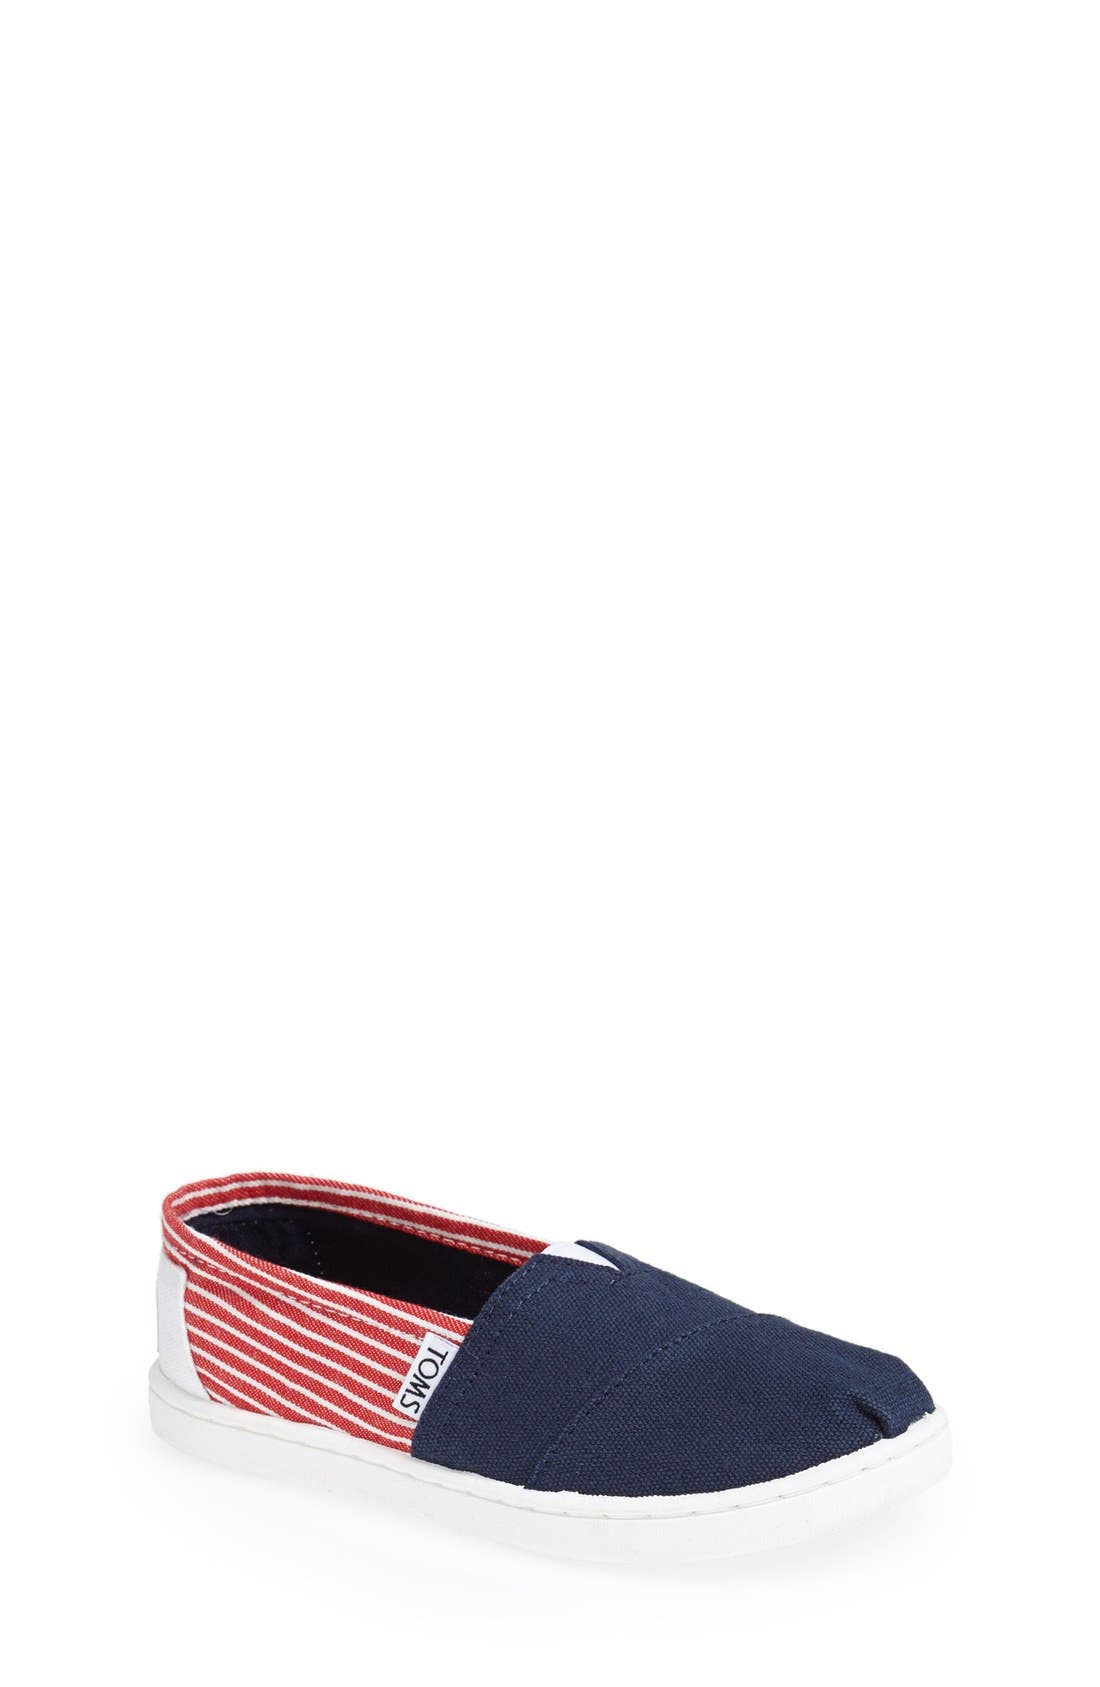 Main Image - TOMS 'Youth Classic - Freedom' Slip-On (Toddler, Little Kid & Big Kid)